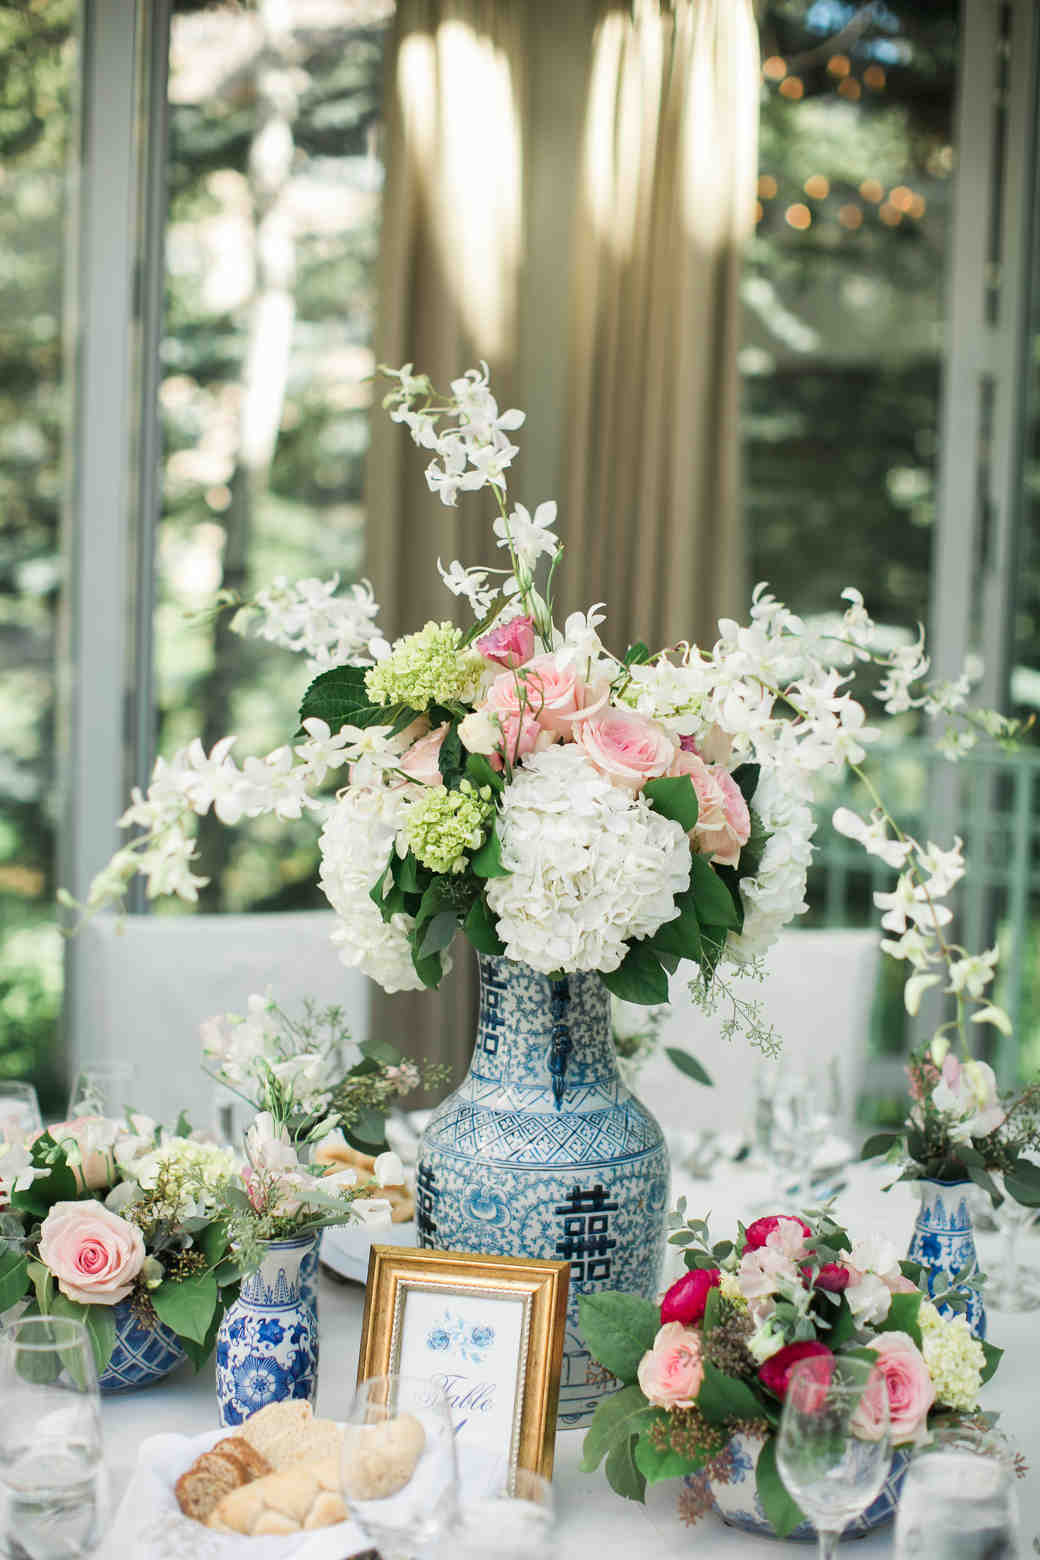 37 Bridal Shower Themes That Are Truly One of a Kind